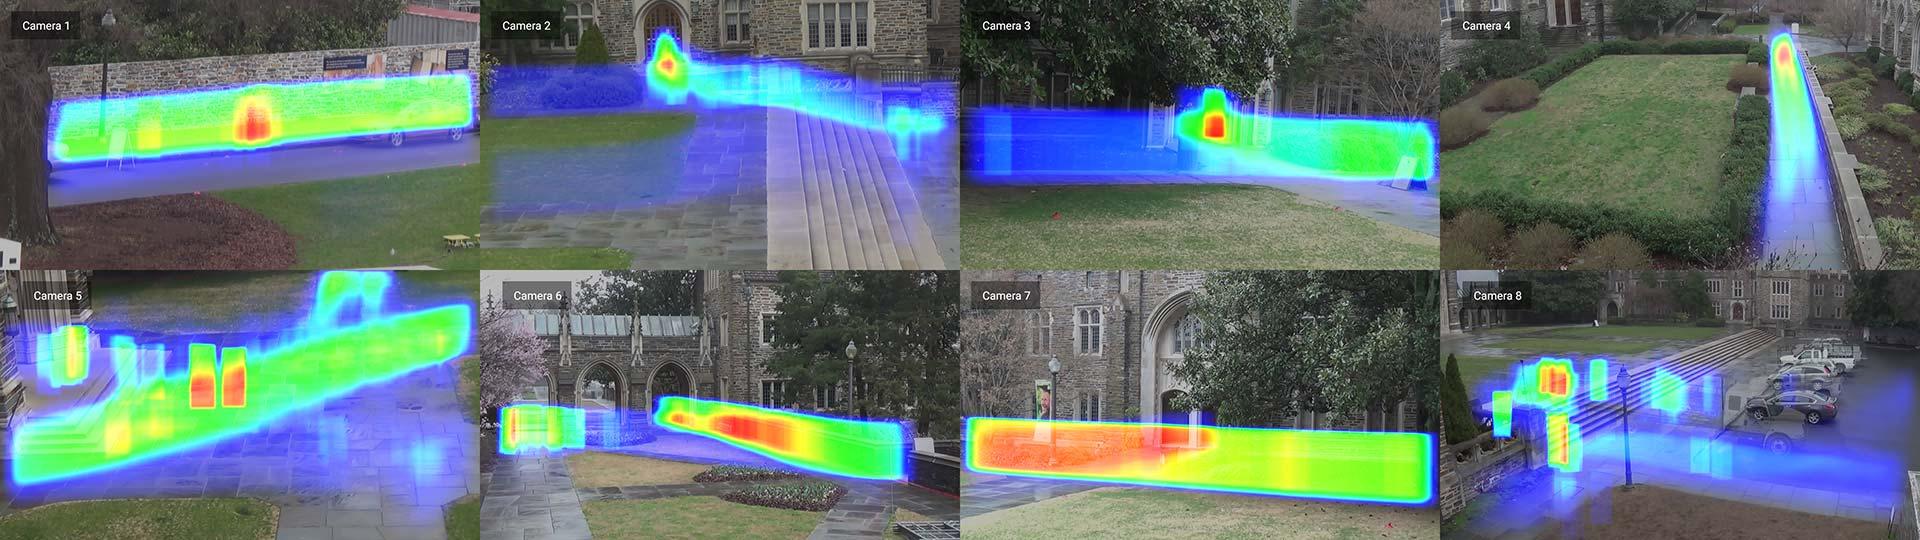 Duke MTMC pedestrian detection saliency maps for 8 cameras deployed on campus © Adam Harvey / MegaPixels.cc